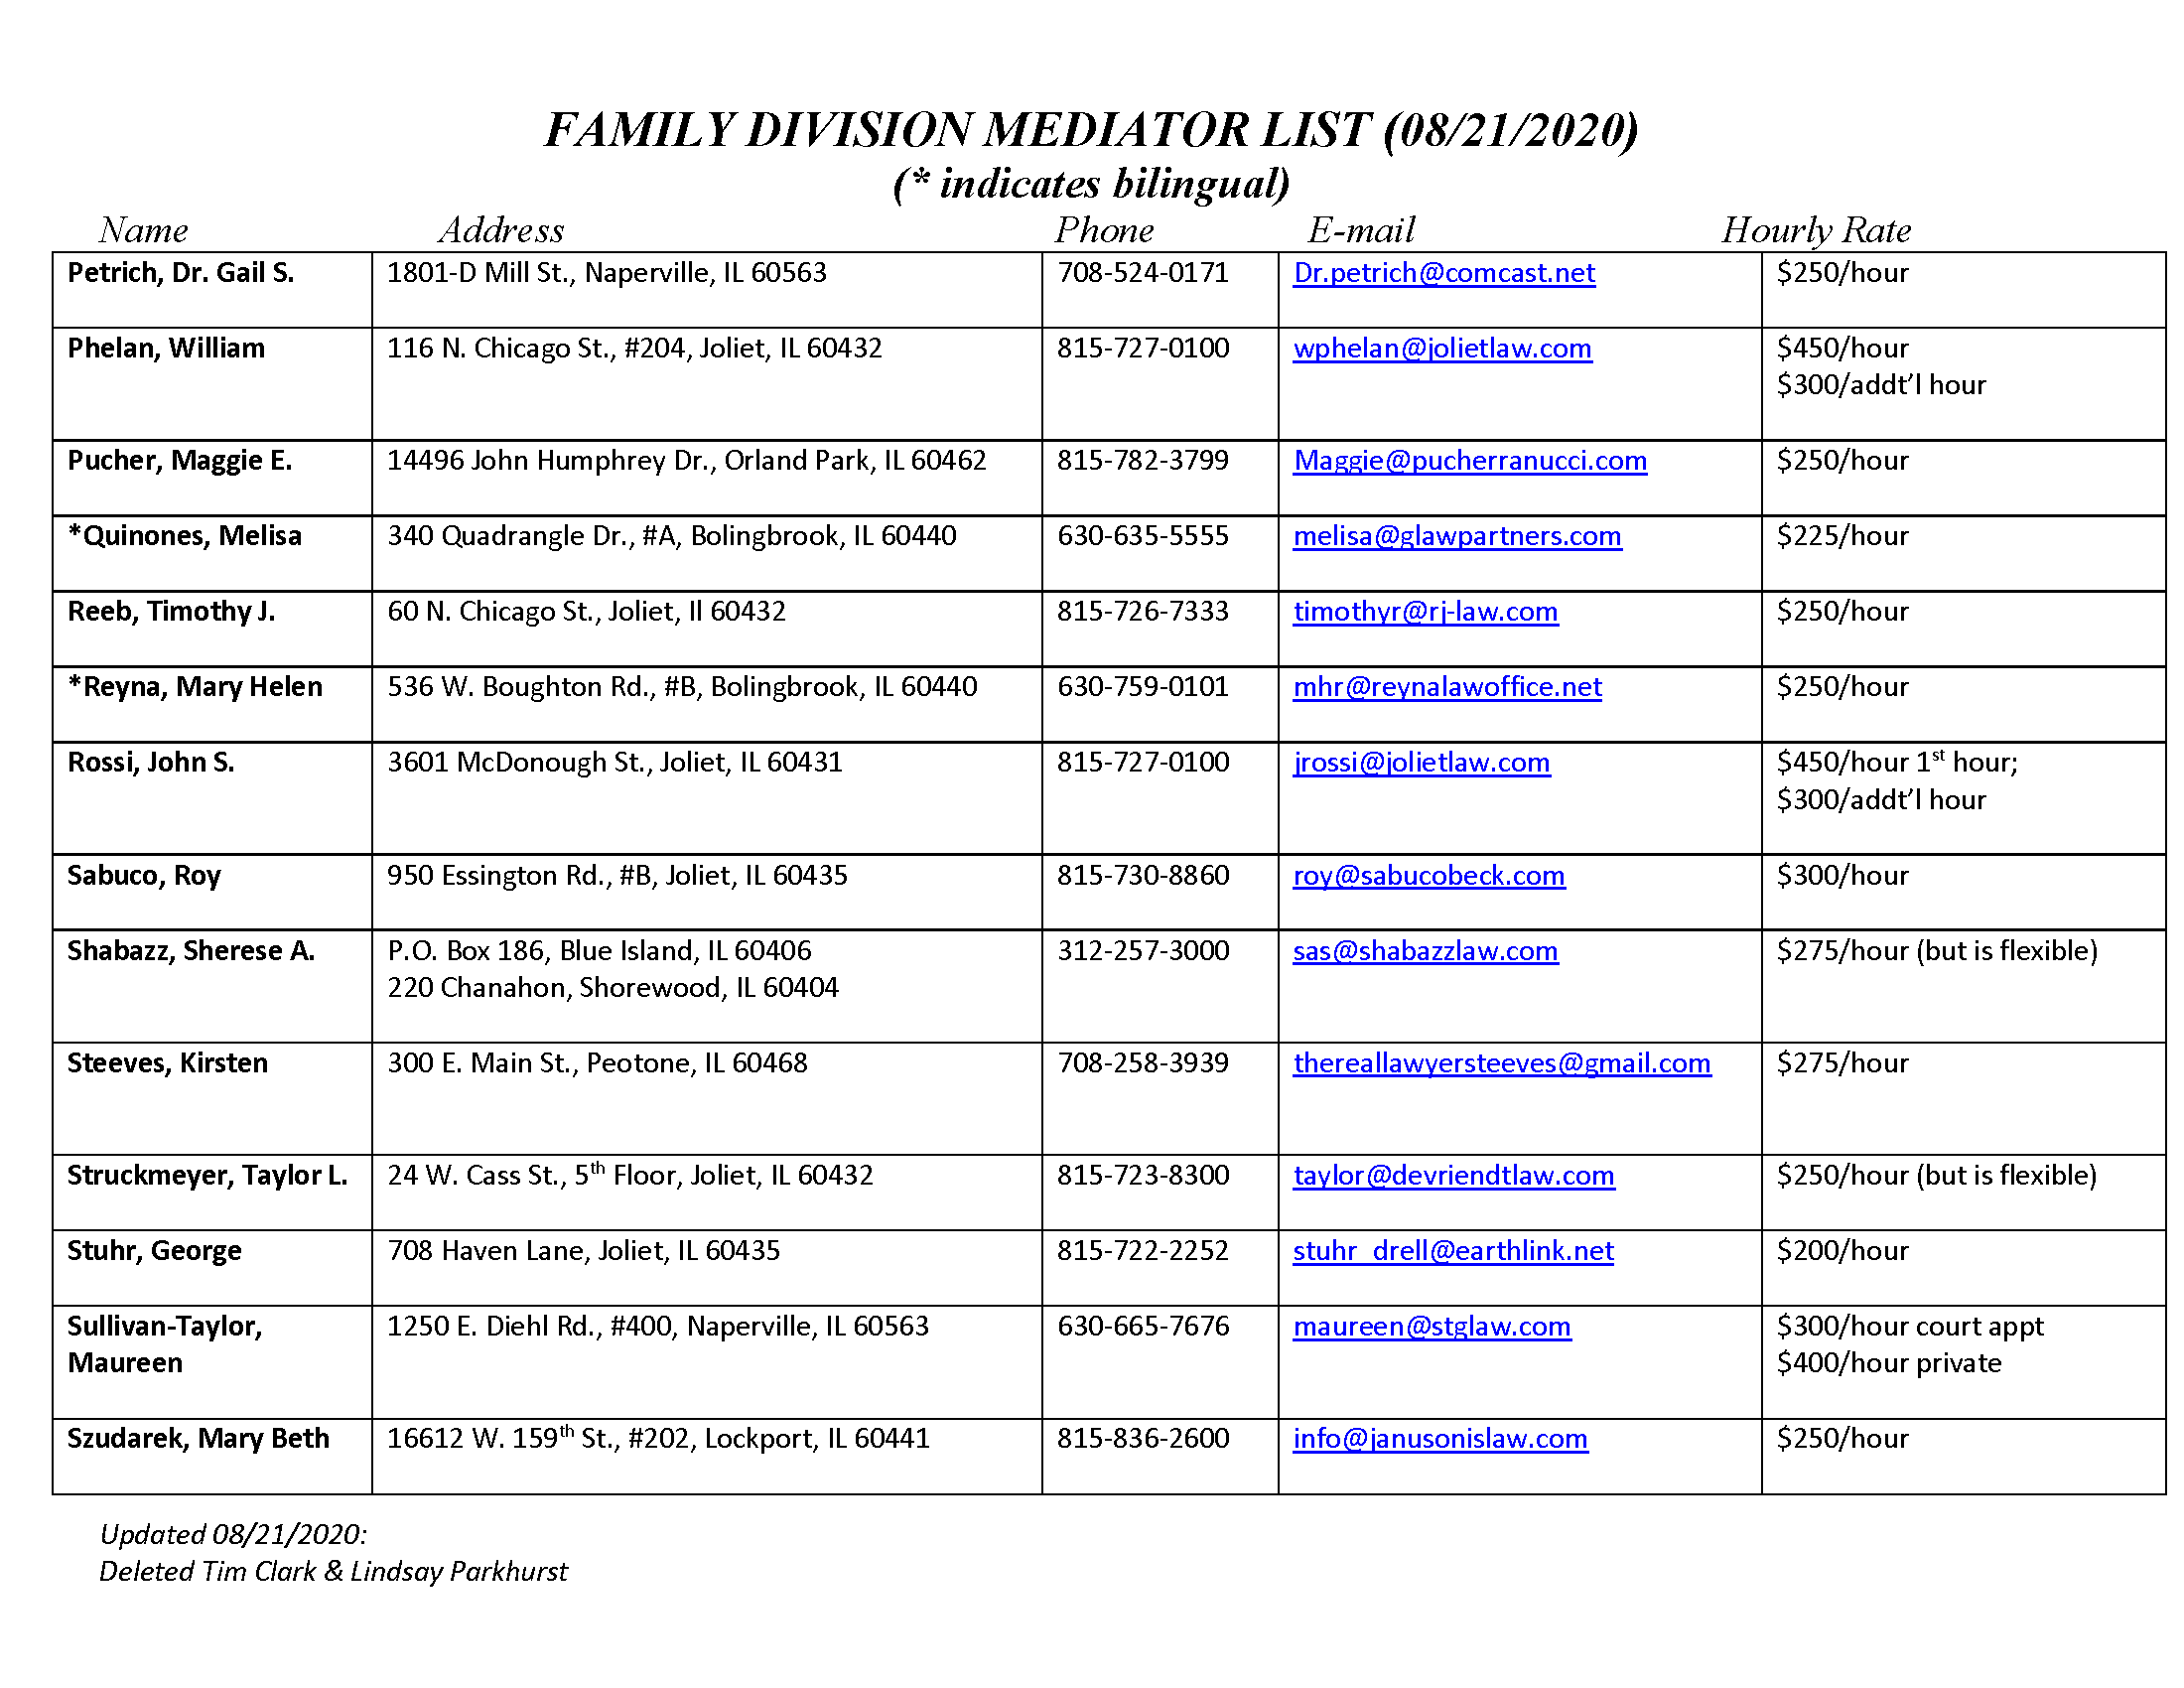 Family Mediator List Pg.5